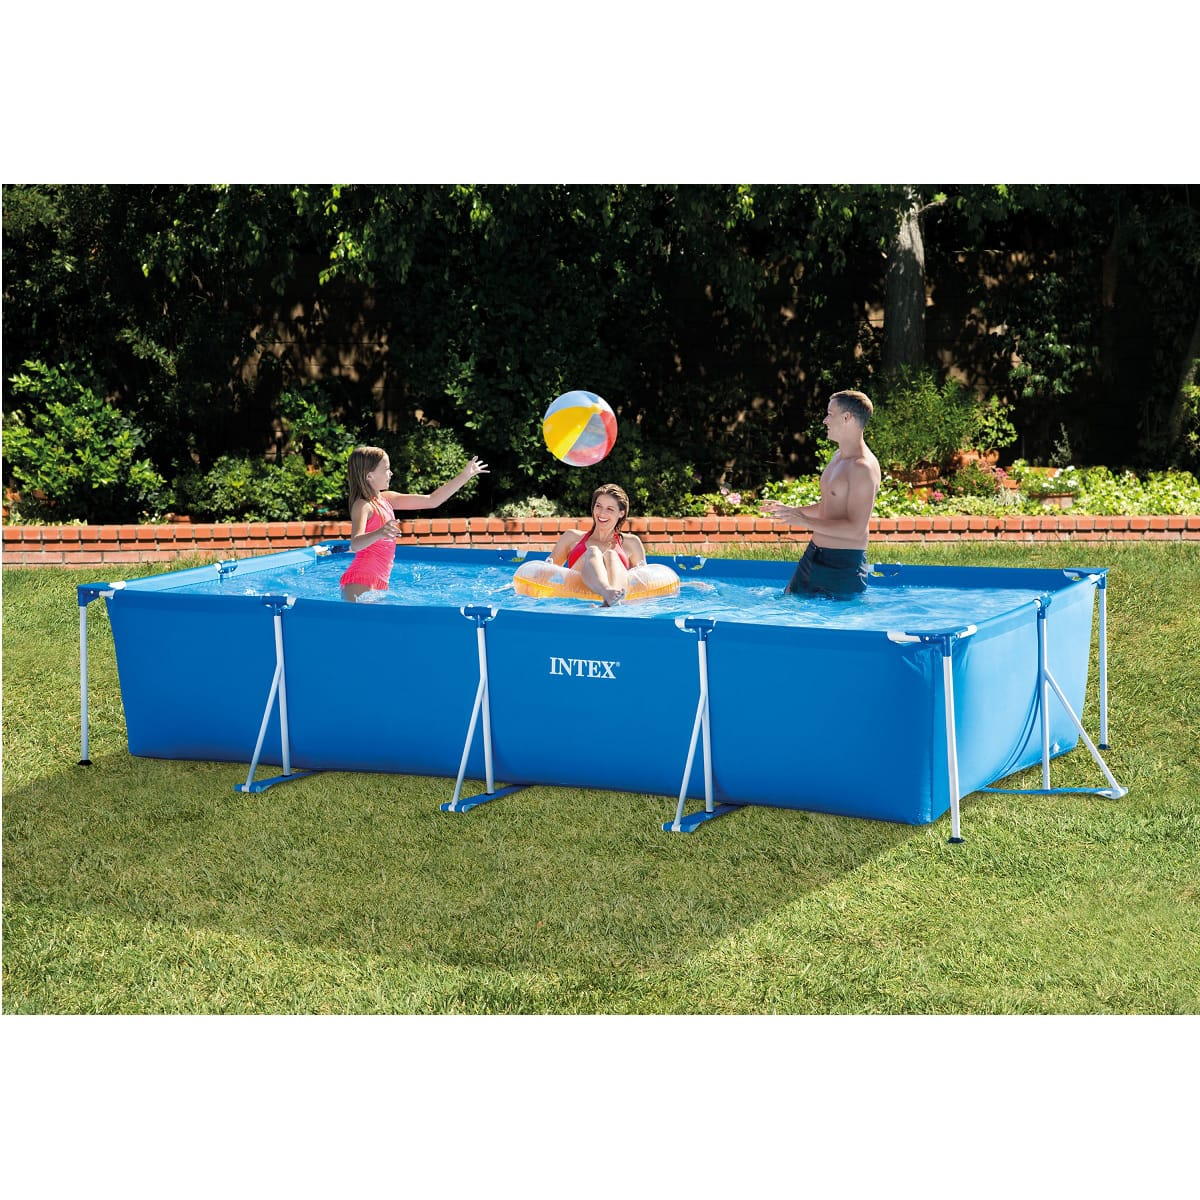 Intex Piscine Tubulaire Rectangulaire 4,50X2,20X0,84M Metal Frame destiné Auchan Piscine Tubulaire